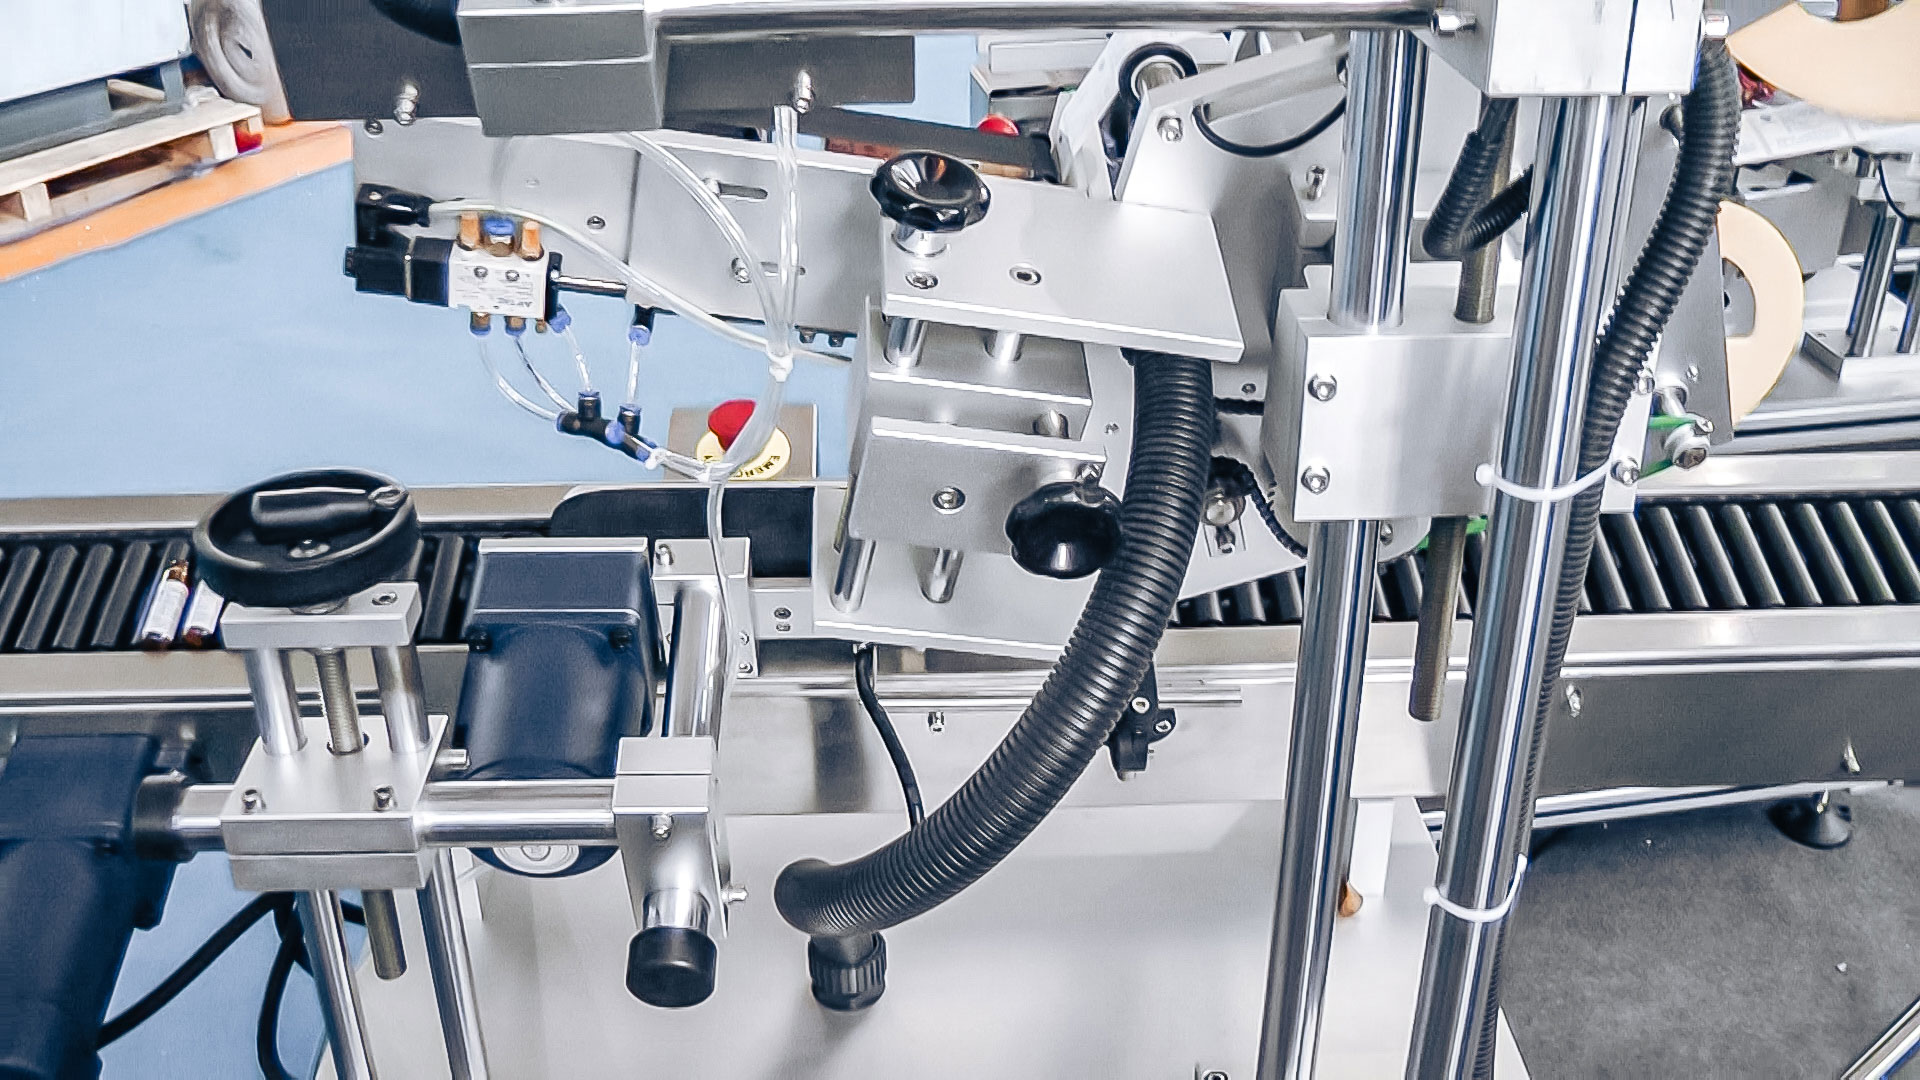 How It's Made? Labeling ampoules using pharmaceutical equipment